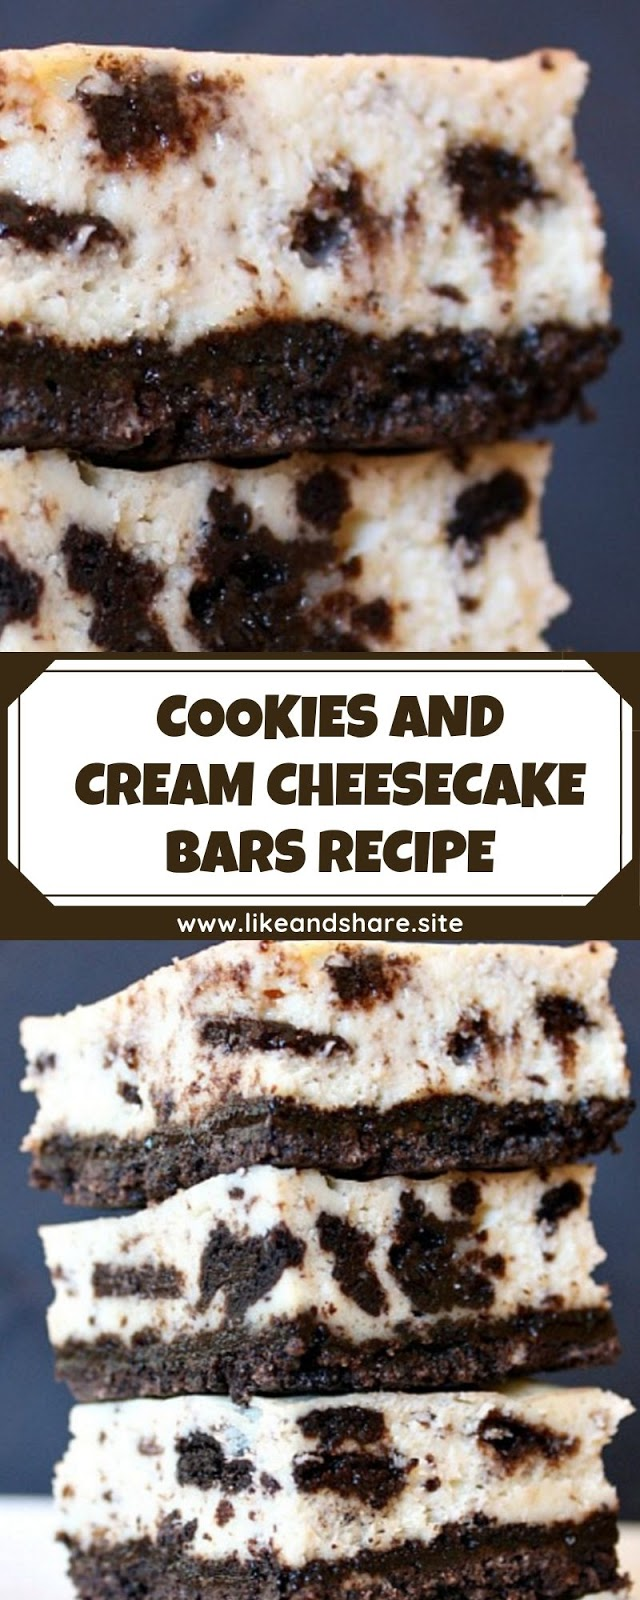 COOKIES AND CREAM CHEESECAKE BARS RECIPE